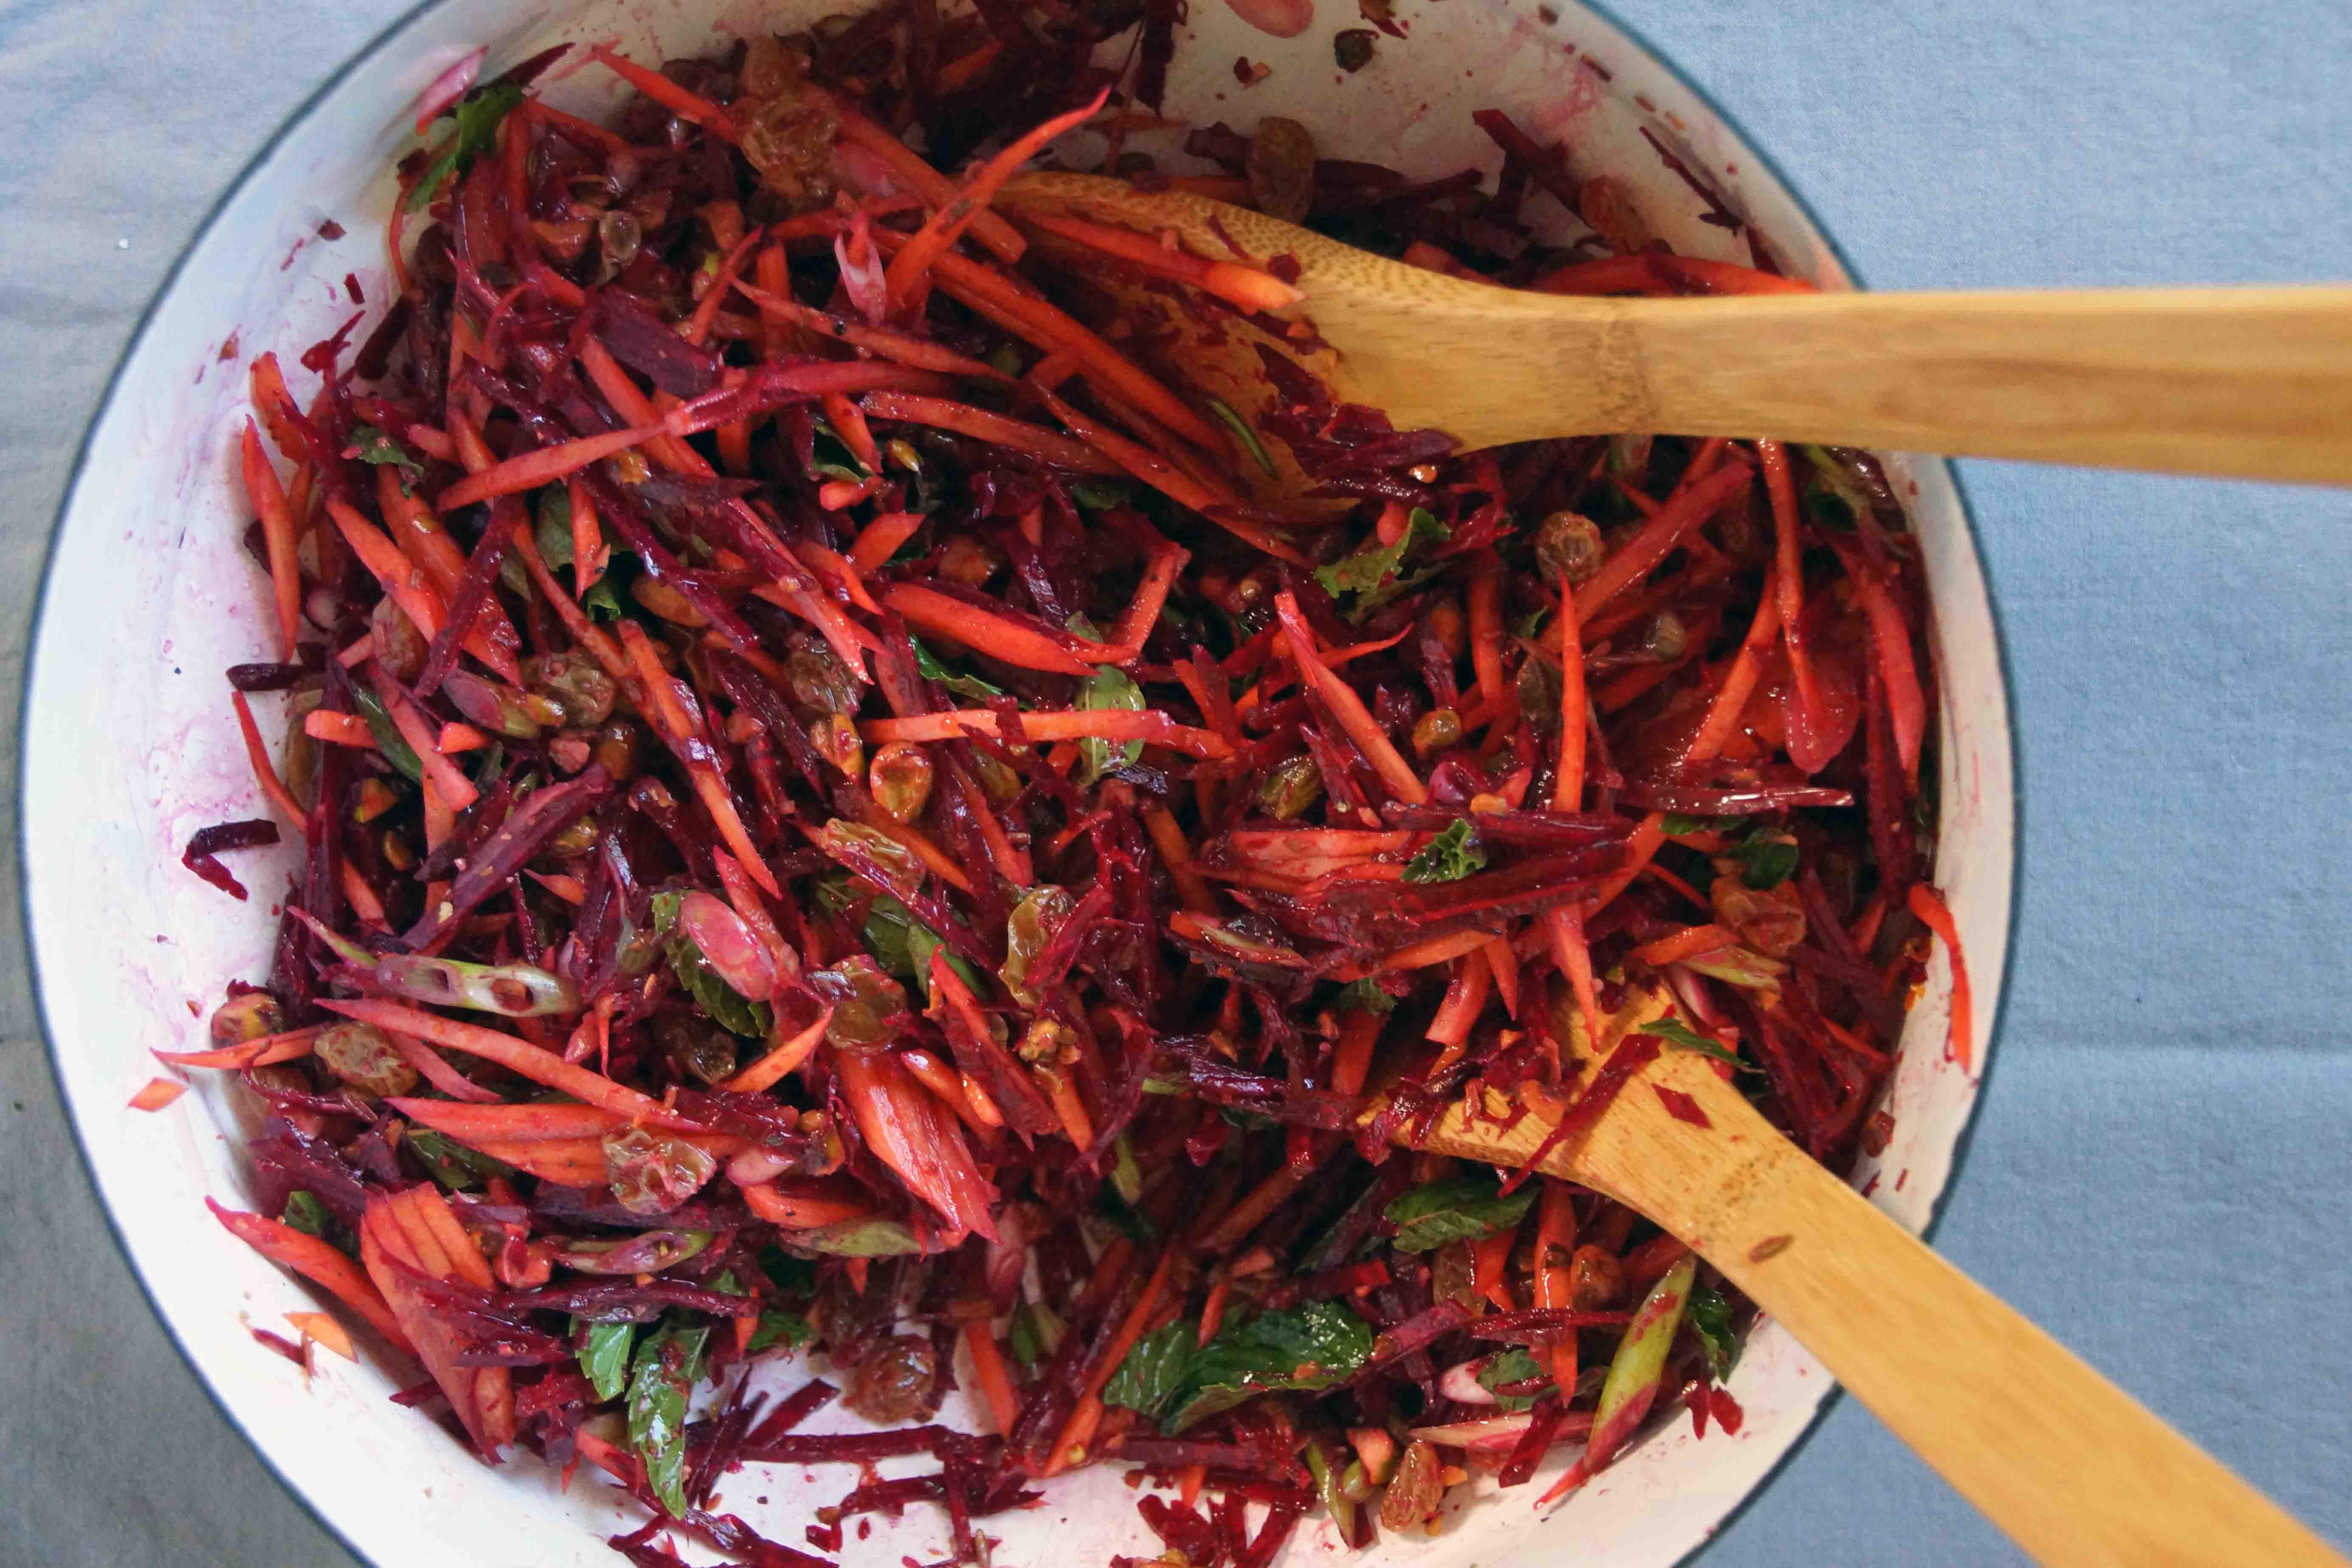 Beet & Carrot Salad with Mint, Raisins & Pistachios